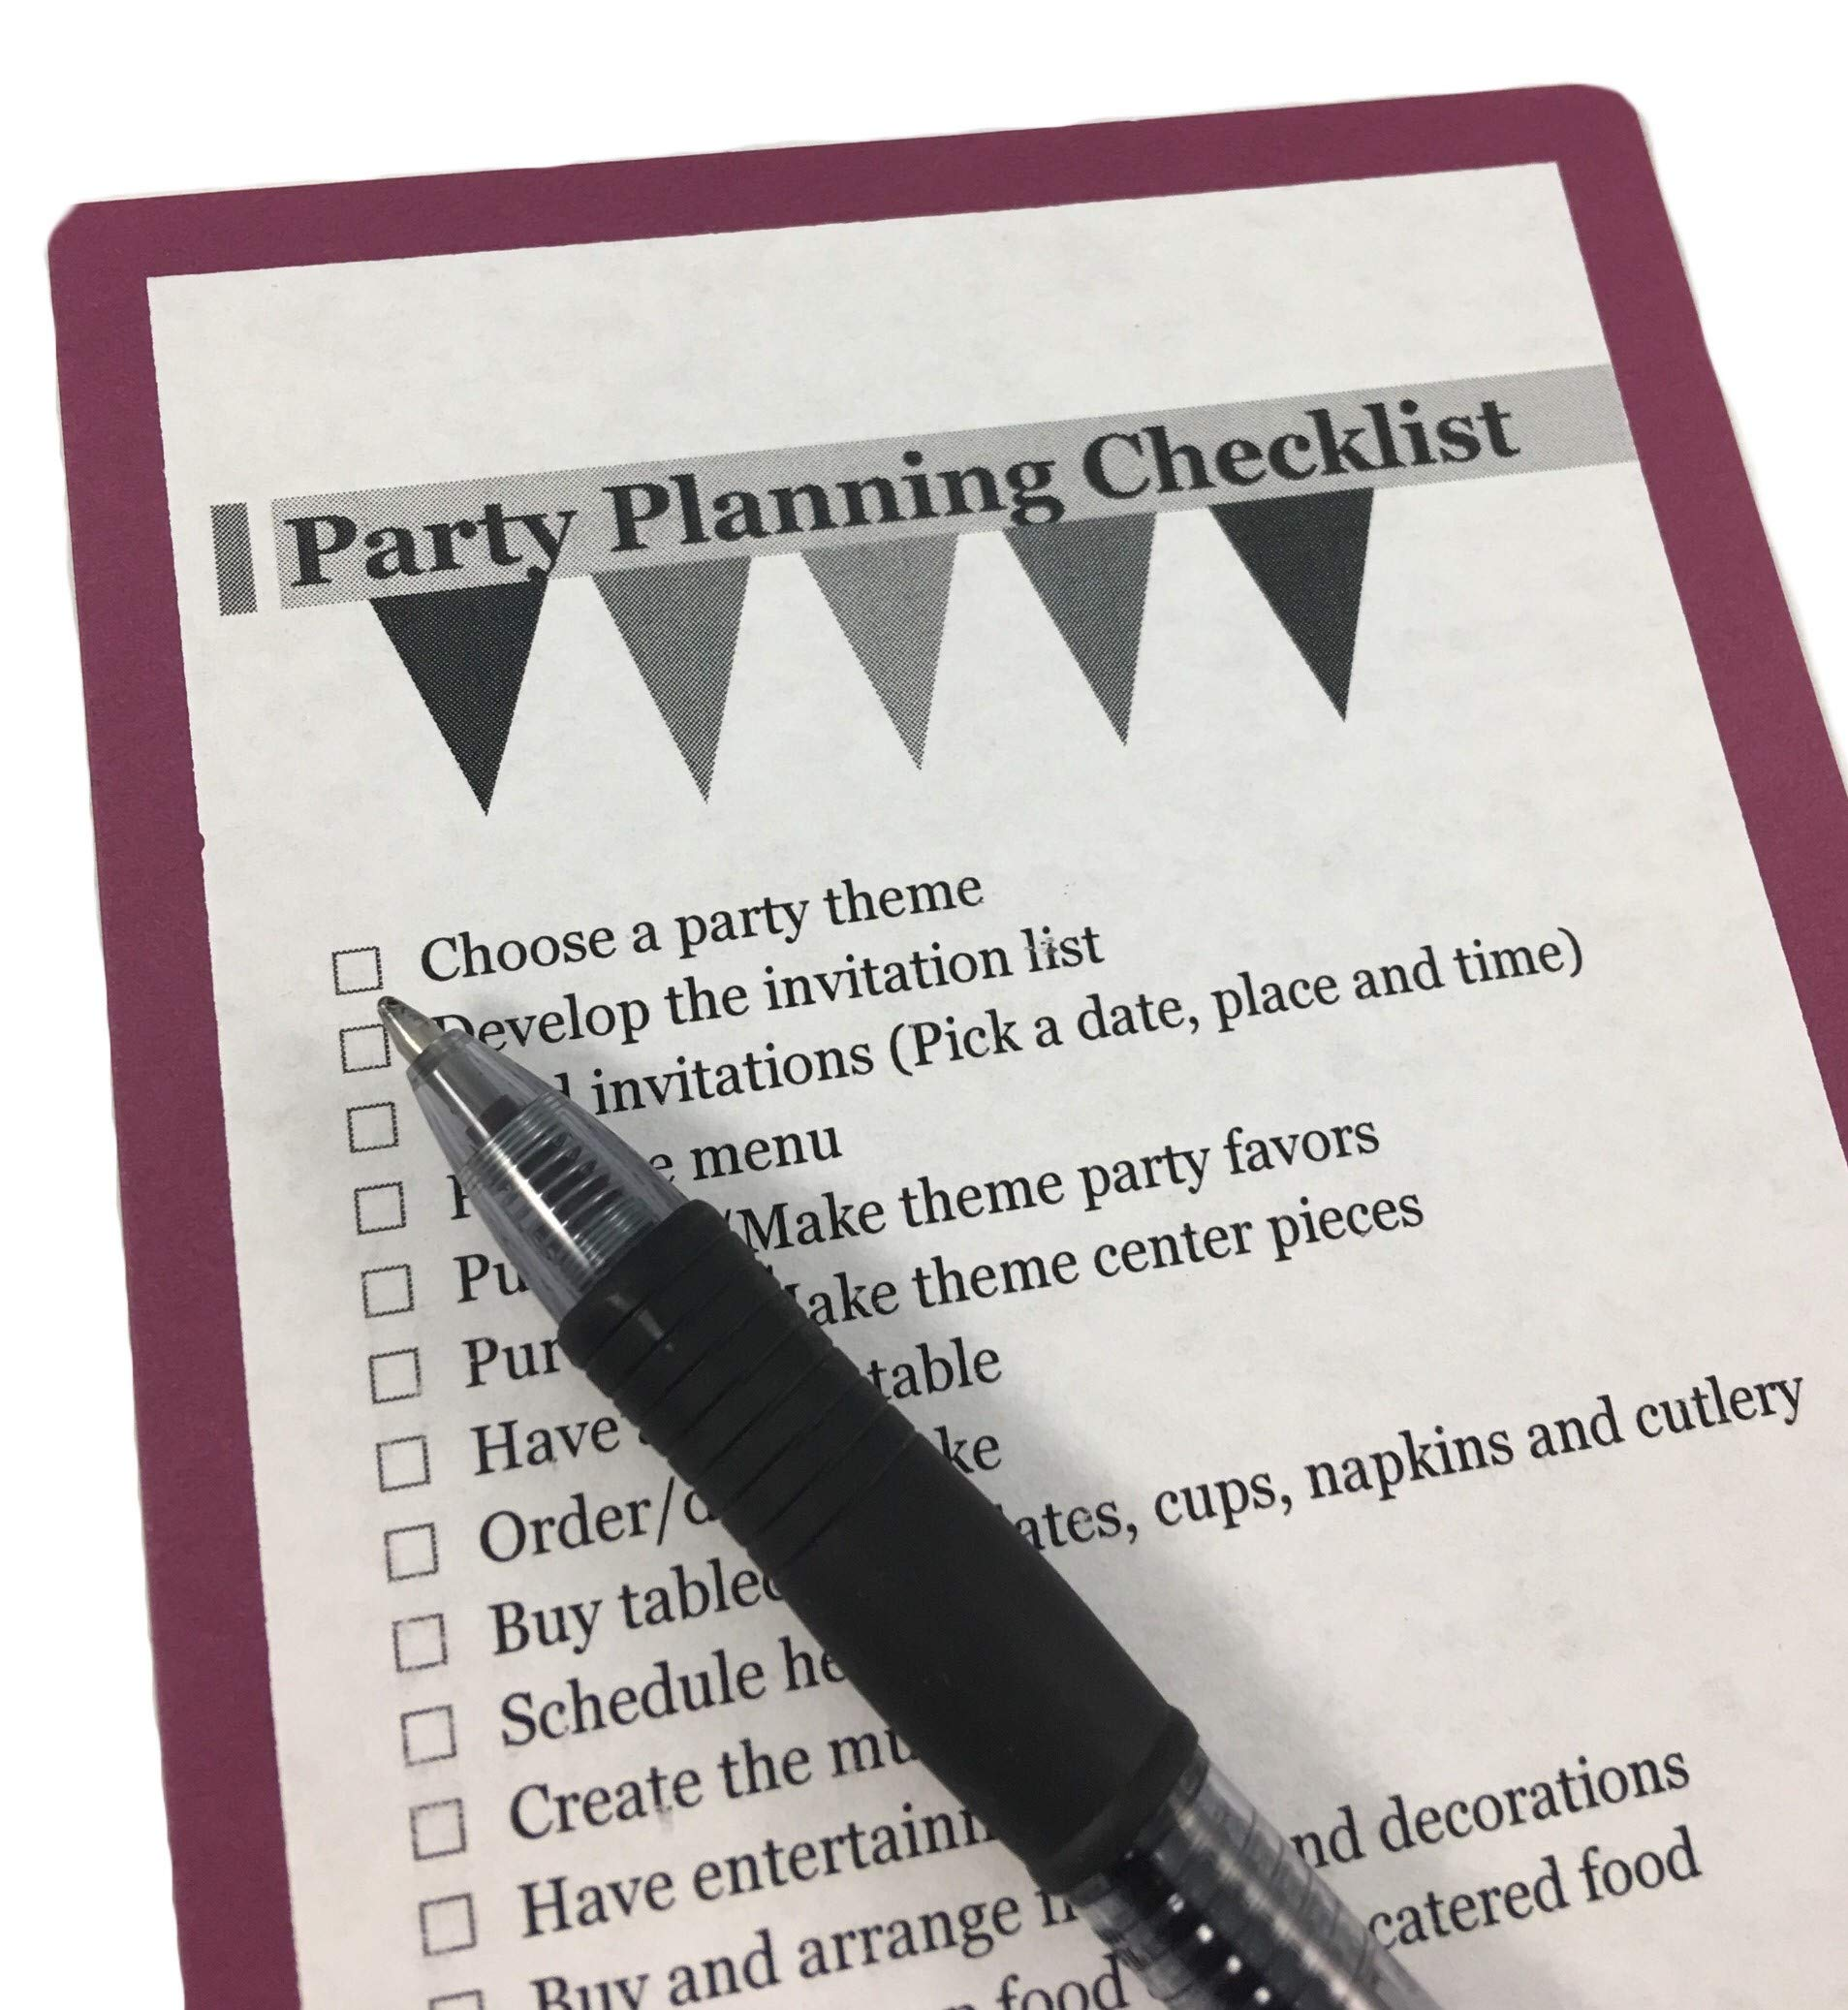 Burgundy Beverage Napkins (100-count) and Burgundy Dinner Napkins (100-count), and Comes with a Party Planning Checklist by Creative Converting Touch of Color